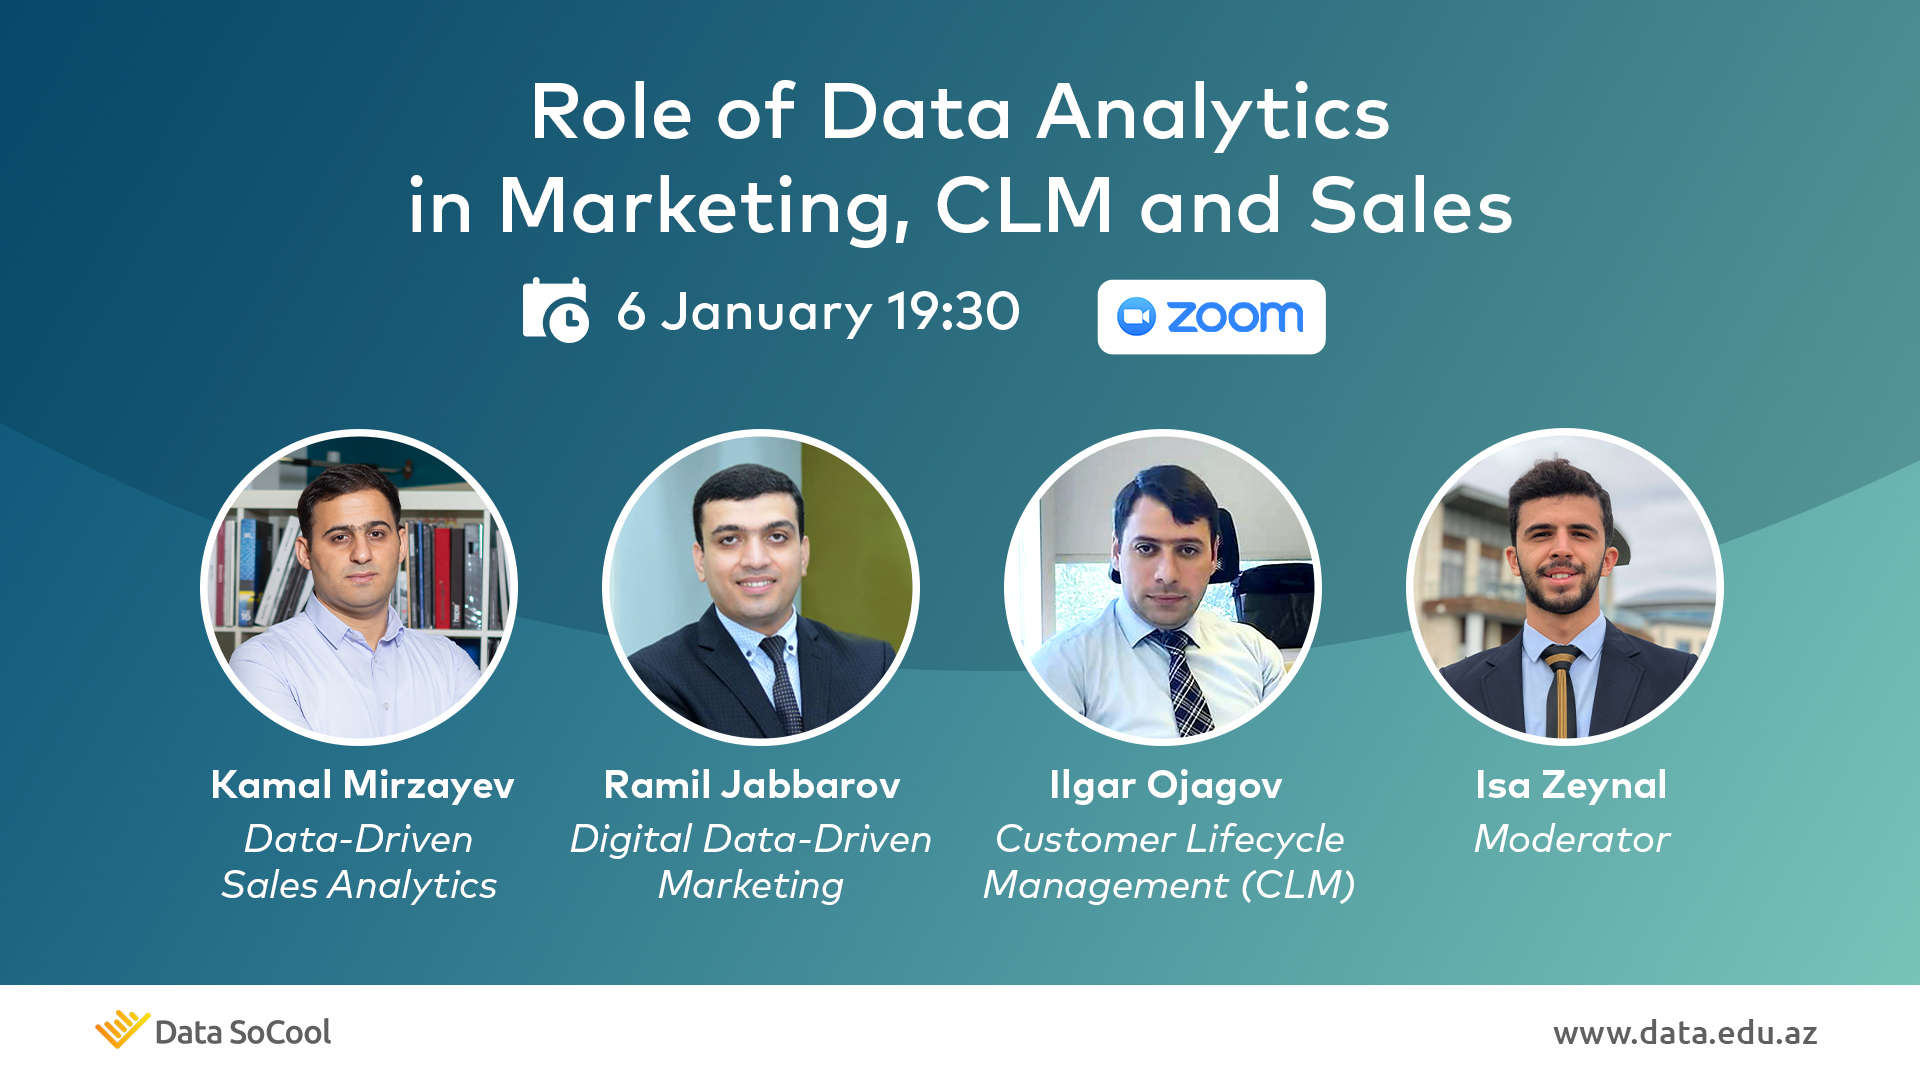 Role of Data Analytics in Marketing, CLM and Sales